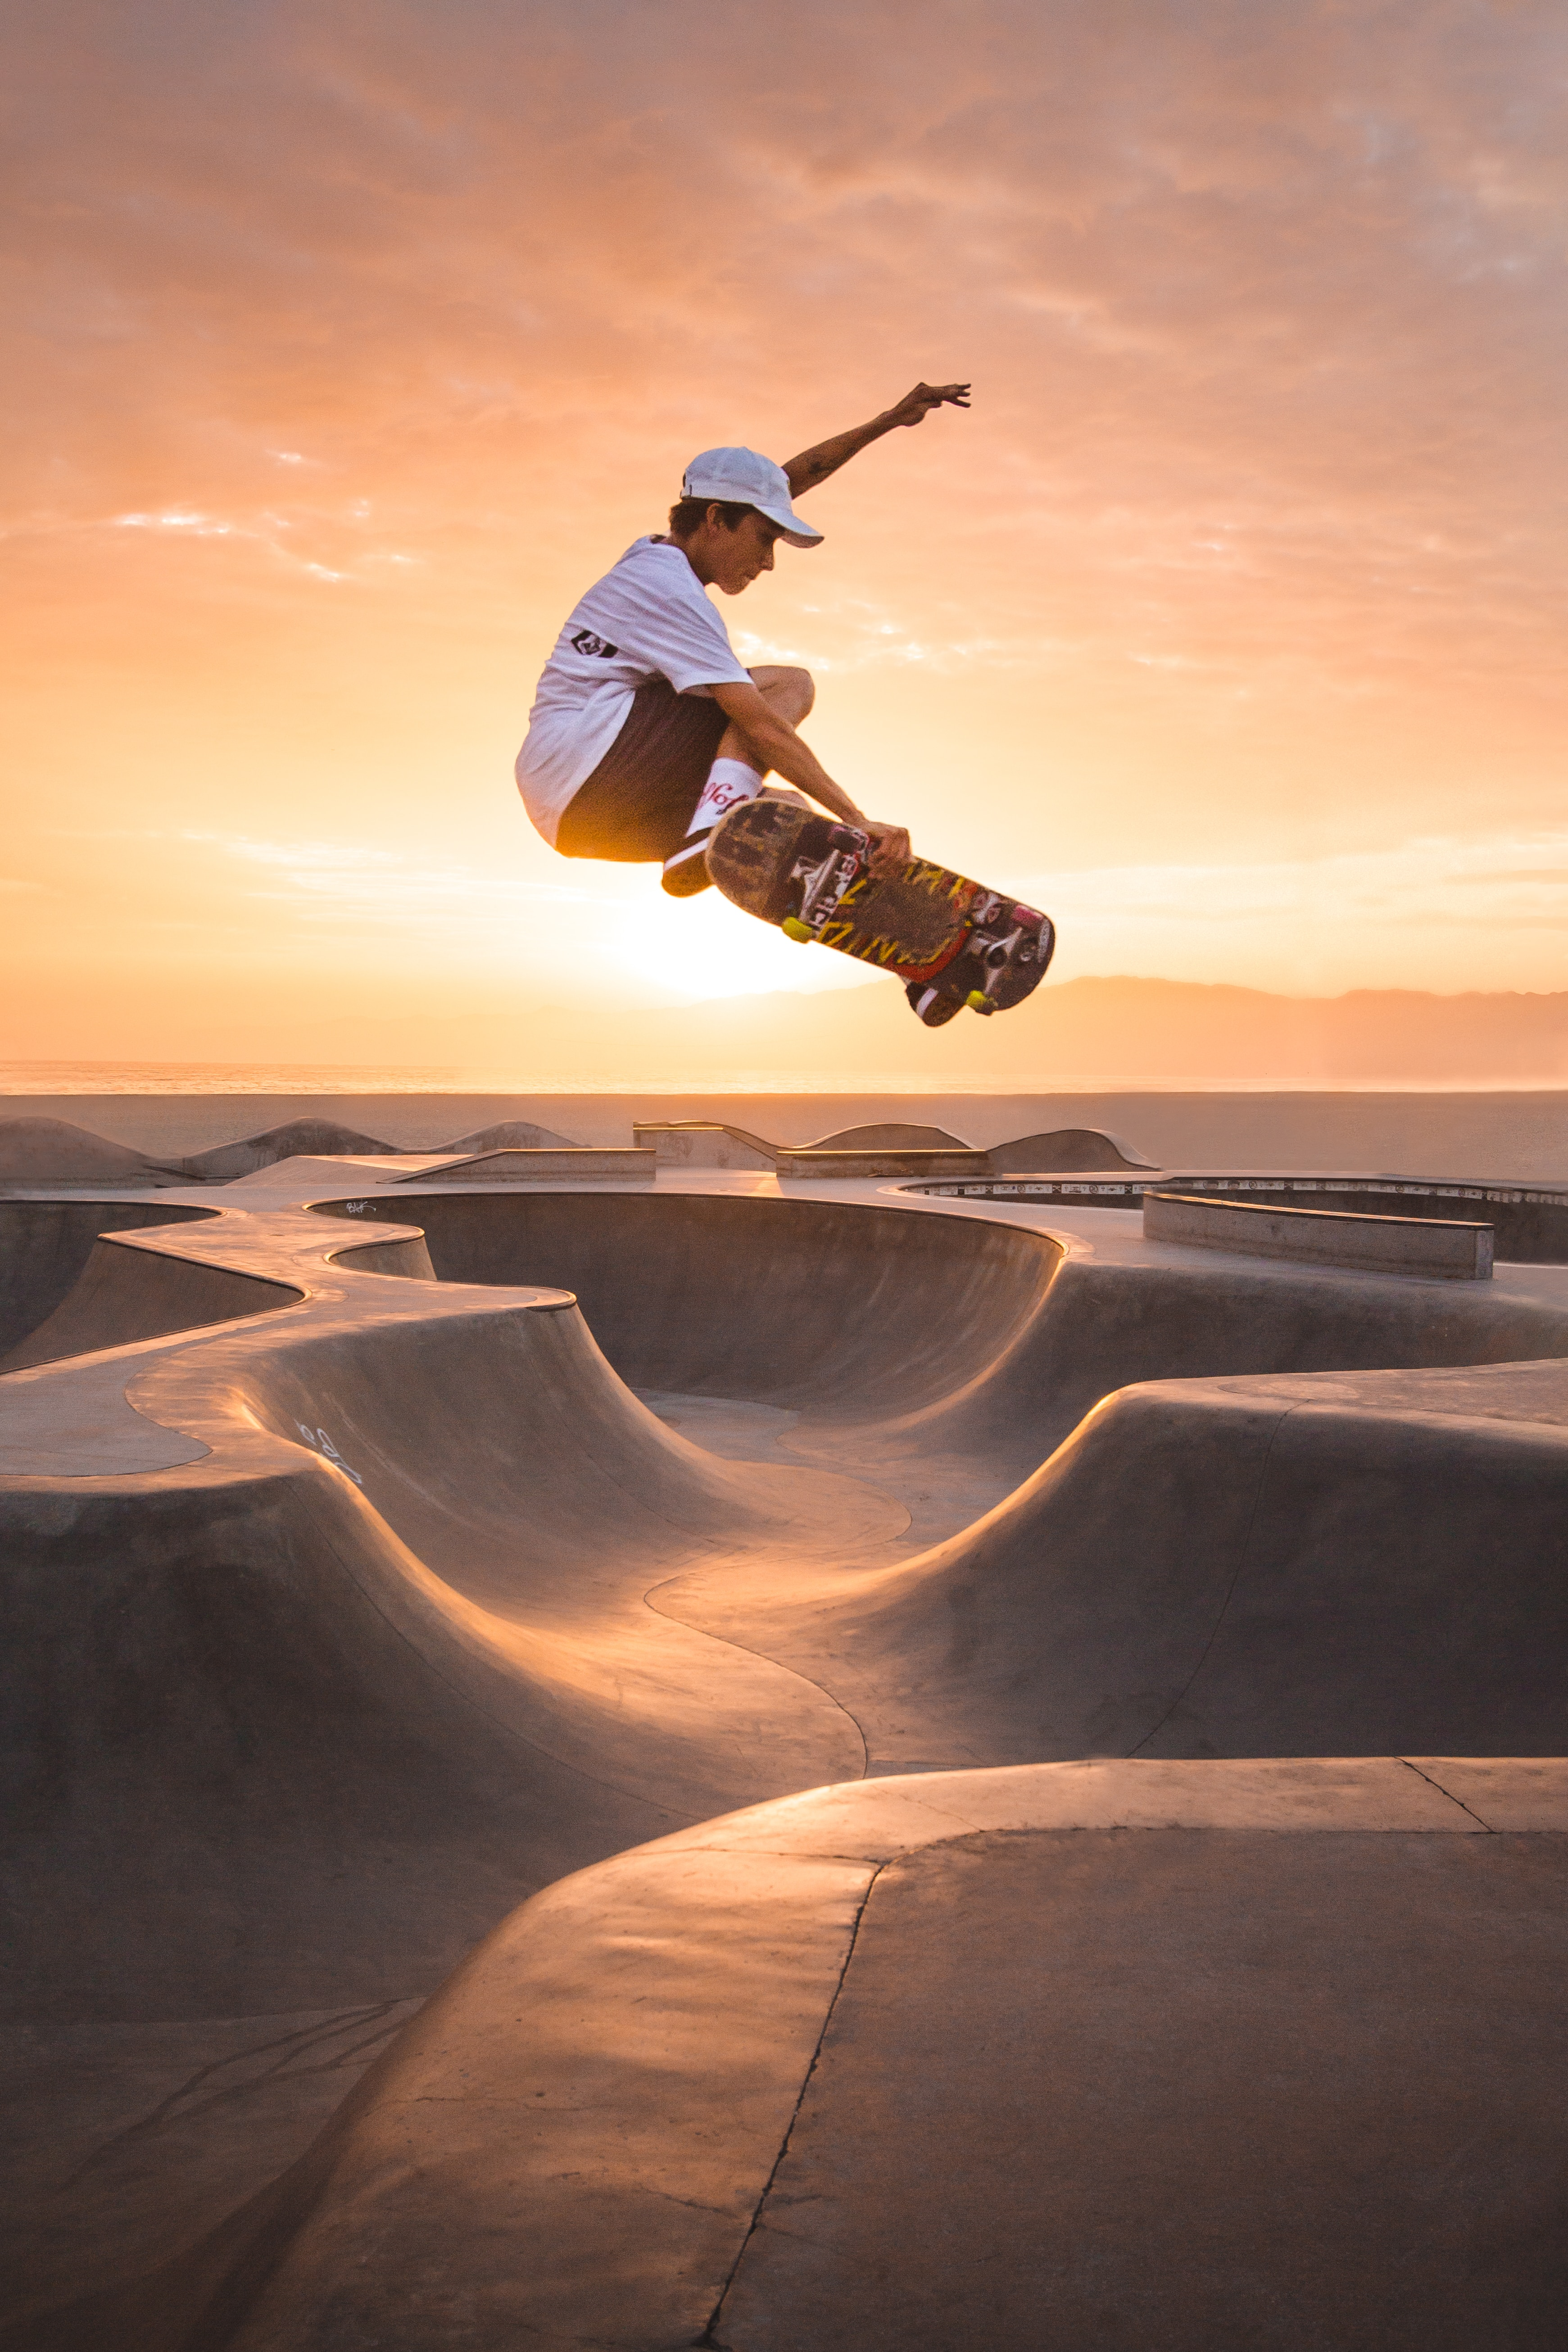 A skateboarder hanging in the air over the hills of a skate park with the sun setting in the background.